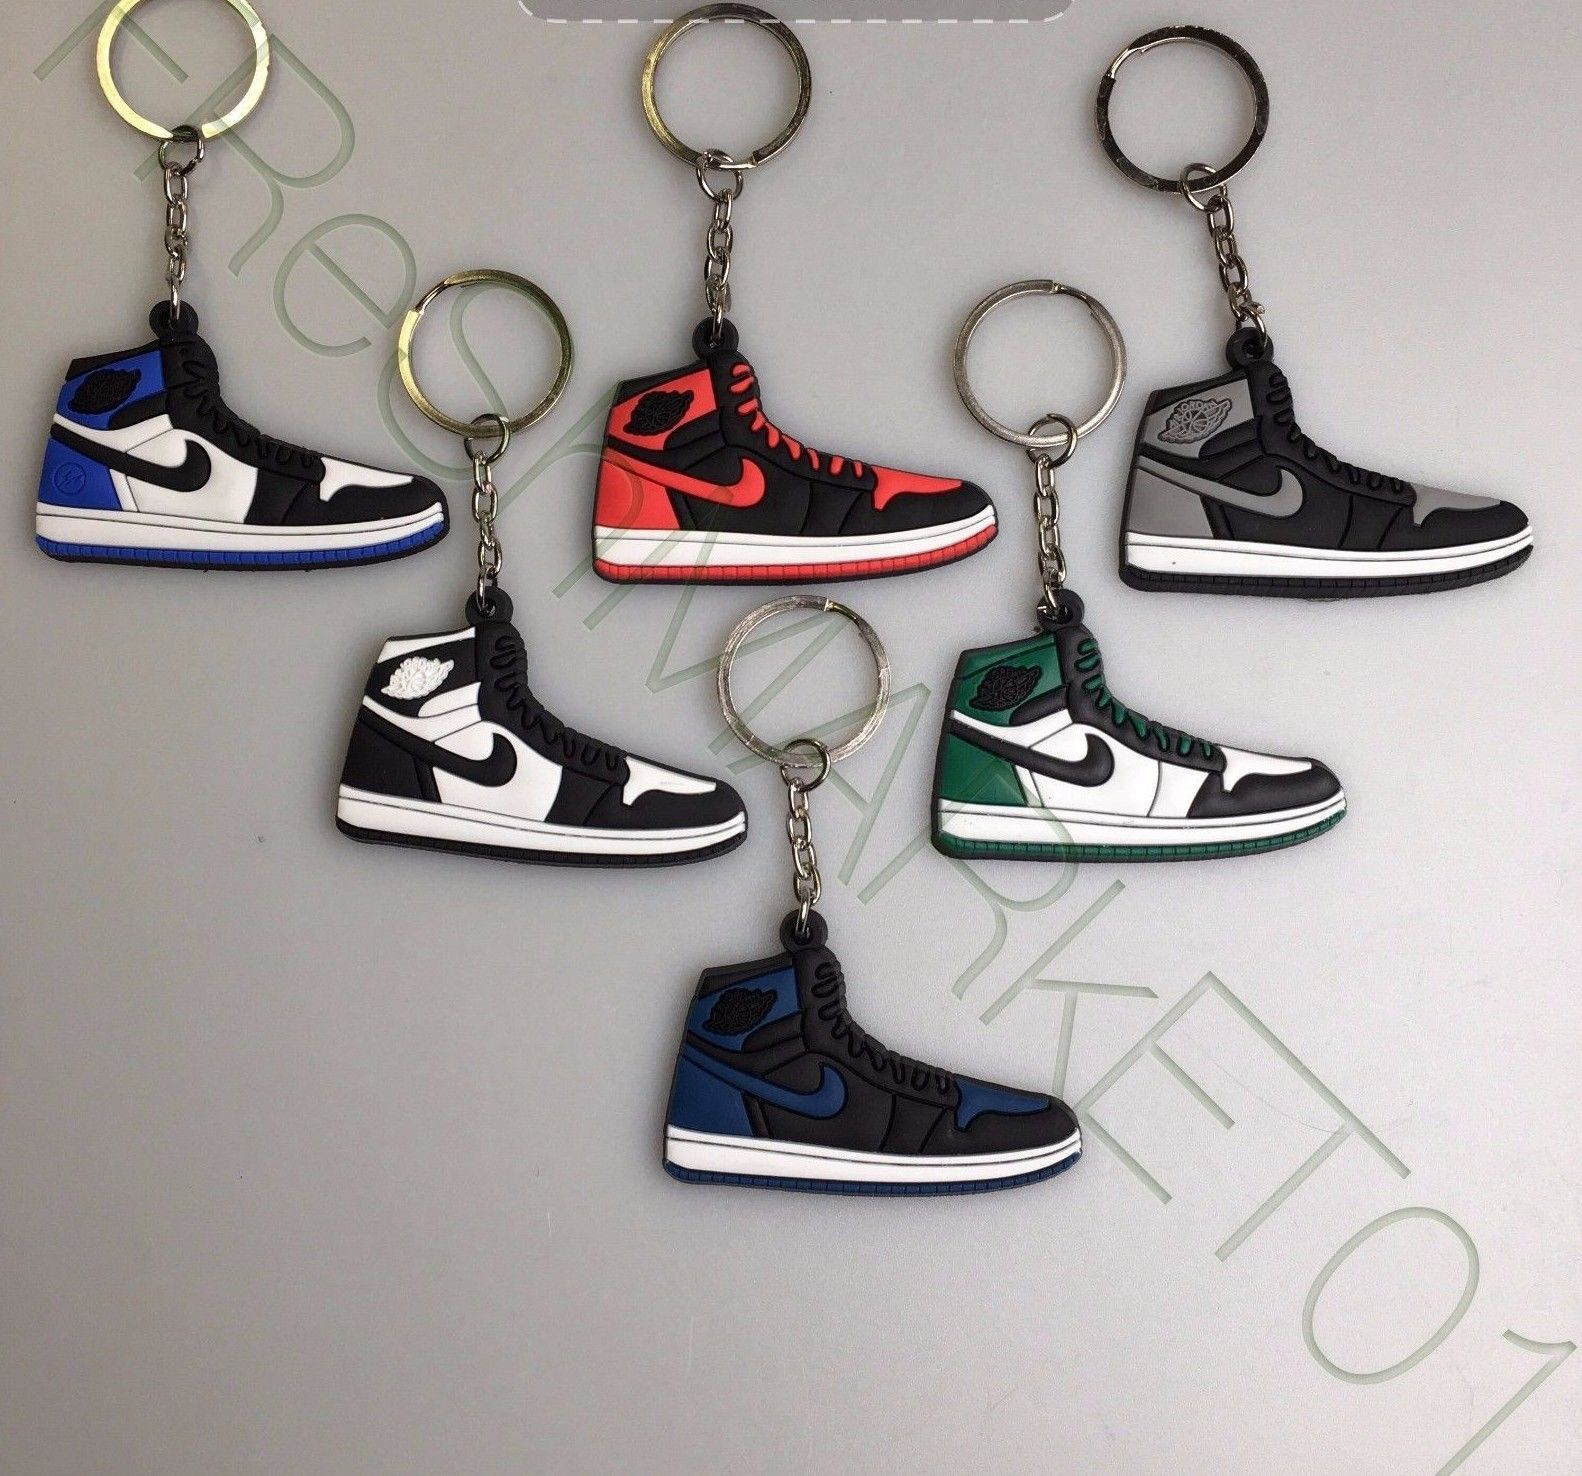 ... the best cfd41 adbae 3.5 - Sneaker Keychain Jordan Supreme Boost V2  Cement Pirate Black Moonrock ... 36a849632